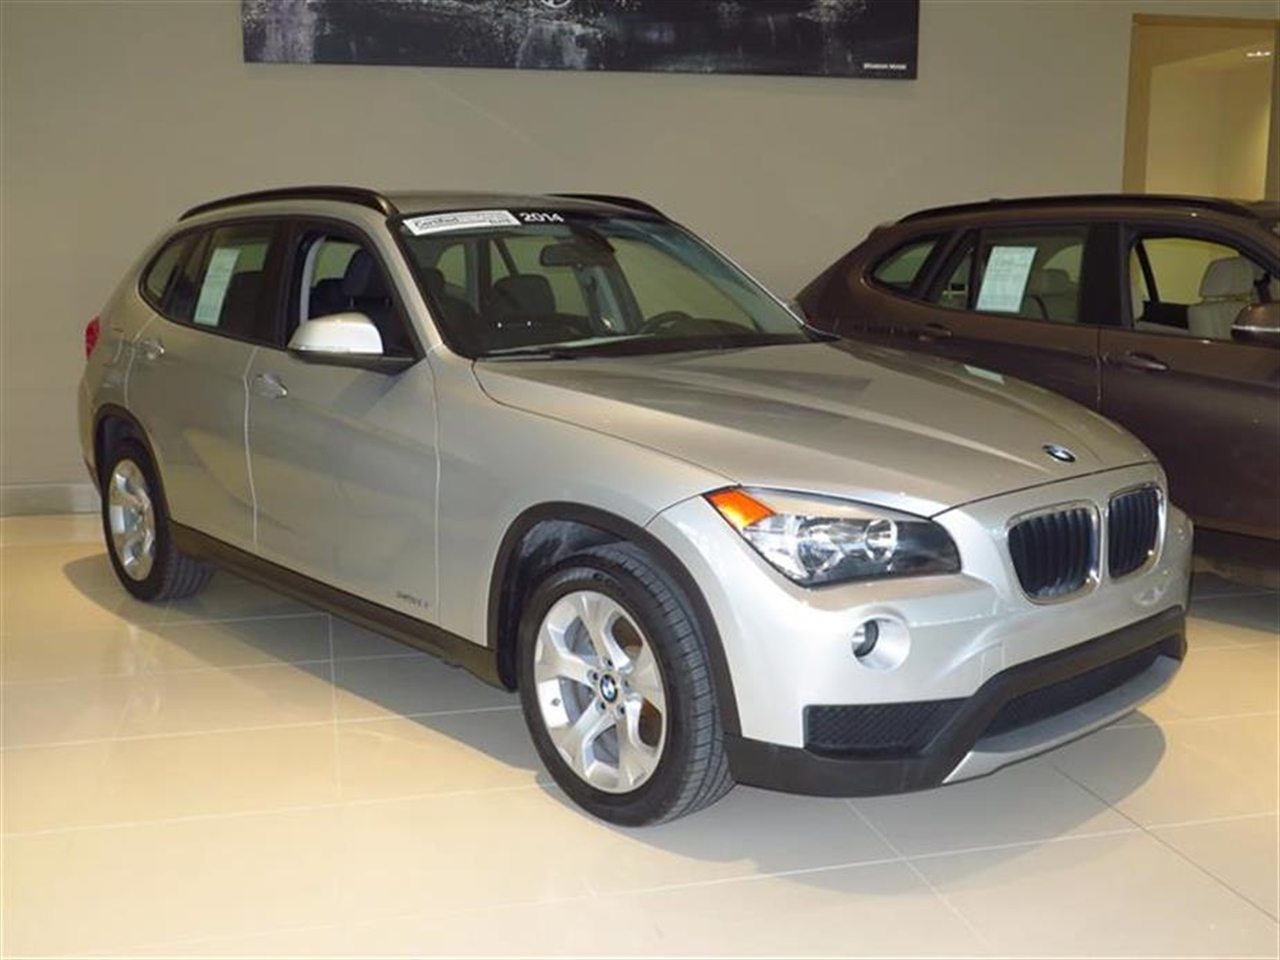 2014 BMW X1 RWD 4dr sDrive28i 9876 miles 2 Seatback Storage Pockets 3 12V DC Power Outlets LEATH